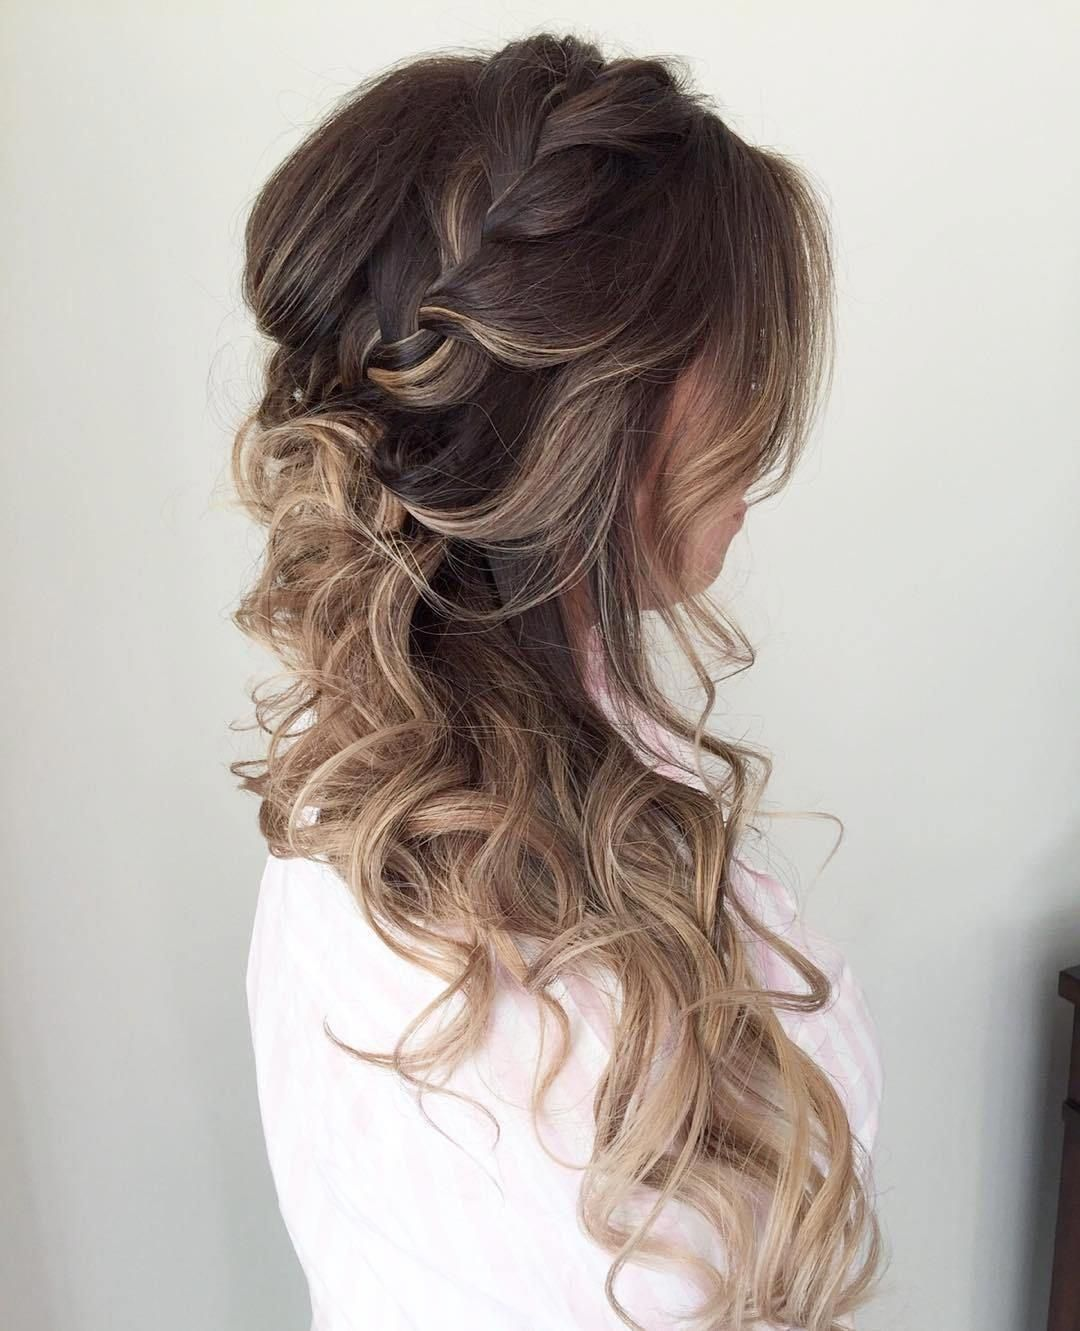 side+hairstyle+with+a+braid+for+long+hair | hair and beauty